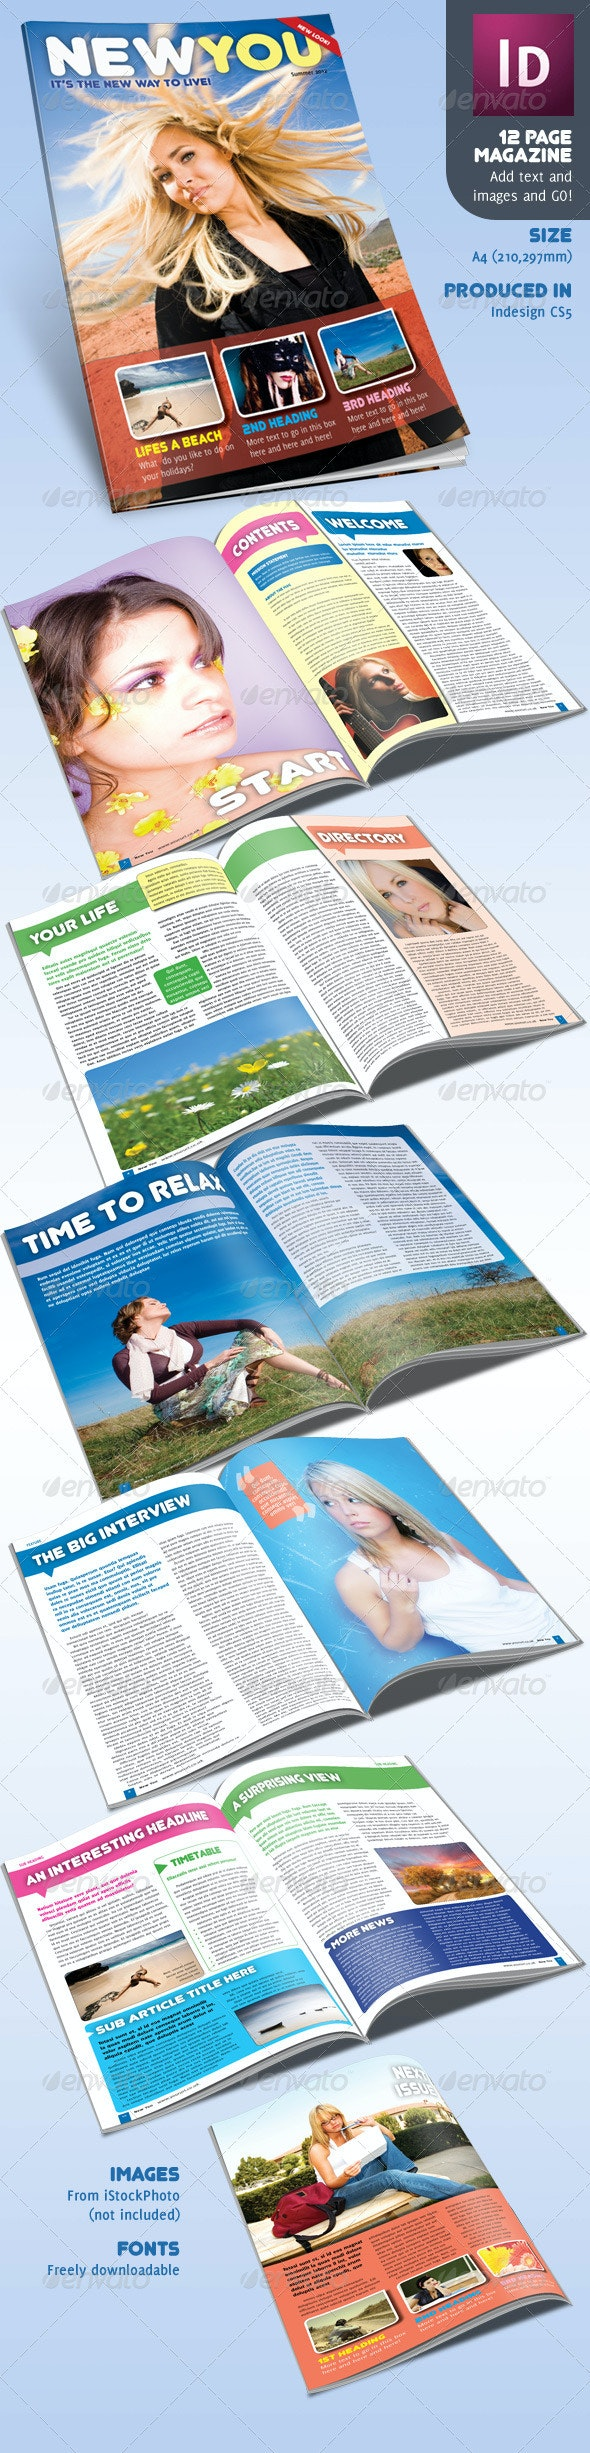 12 Page Magazine inDesign A4 Lifestyle - Magazines Print Templates